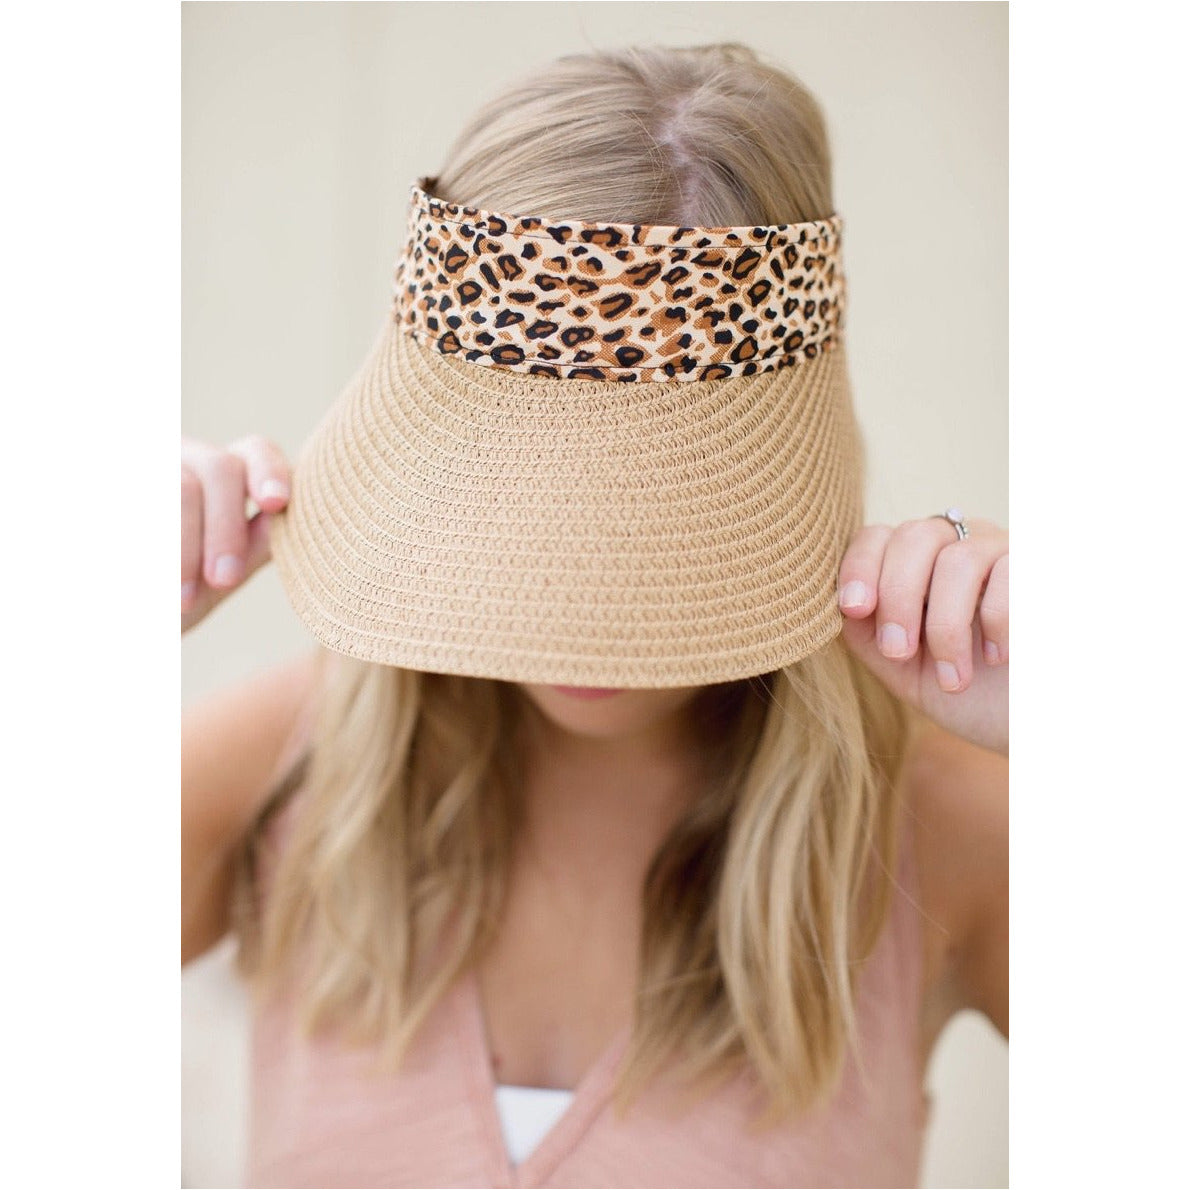 Leopard Visor, Adjustable